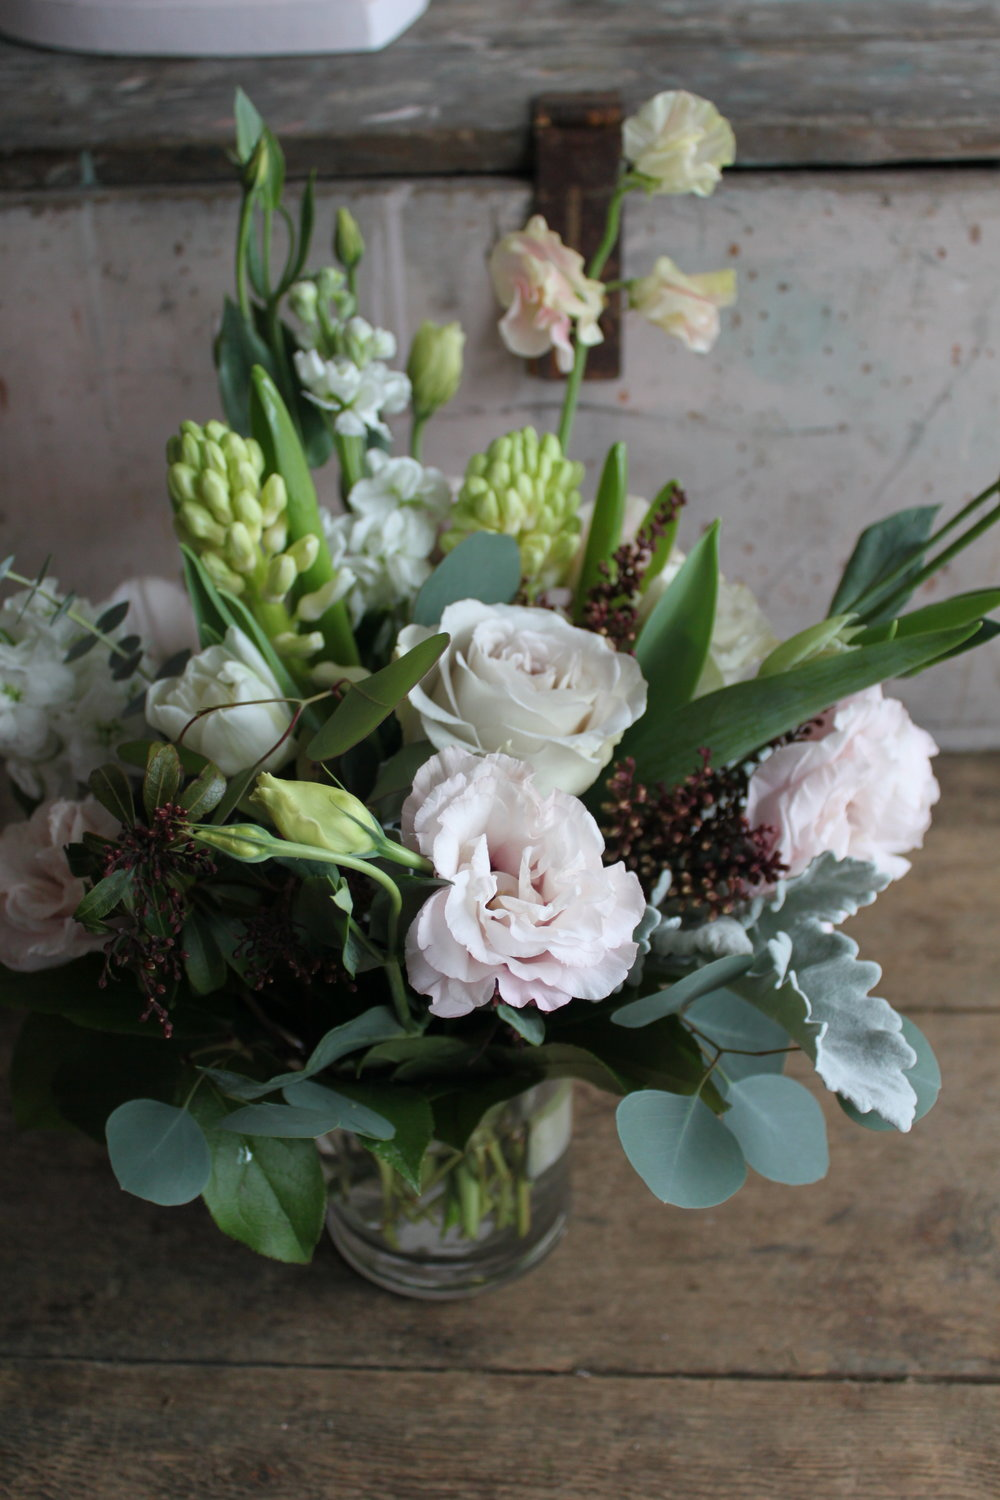 Blog flowers and company tip when cutting sweet peas for flower arrangements pick blooms which have at least two unopened flowers at the top reviewsmspy